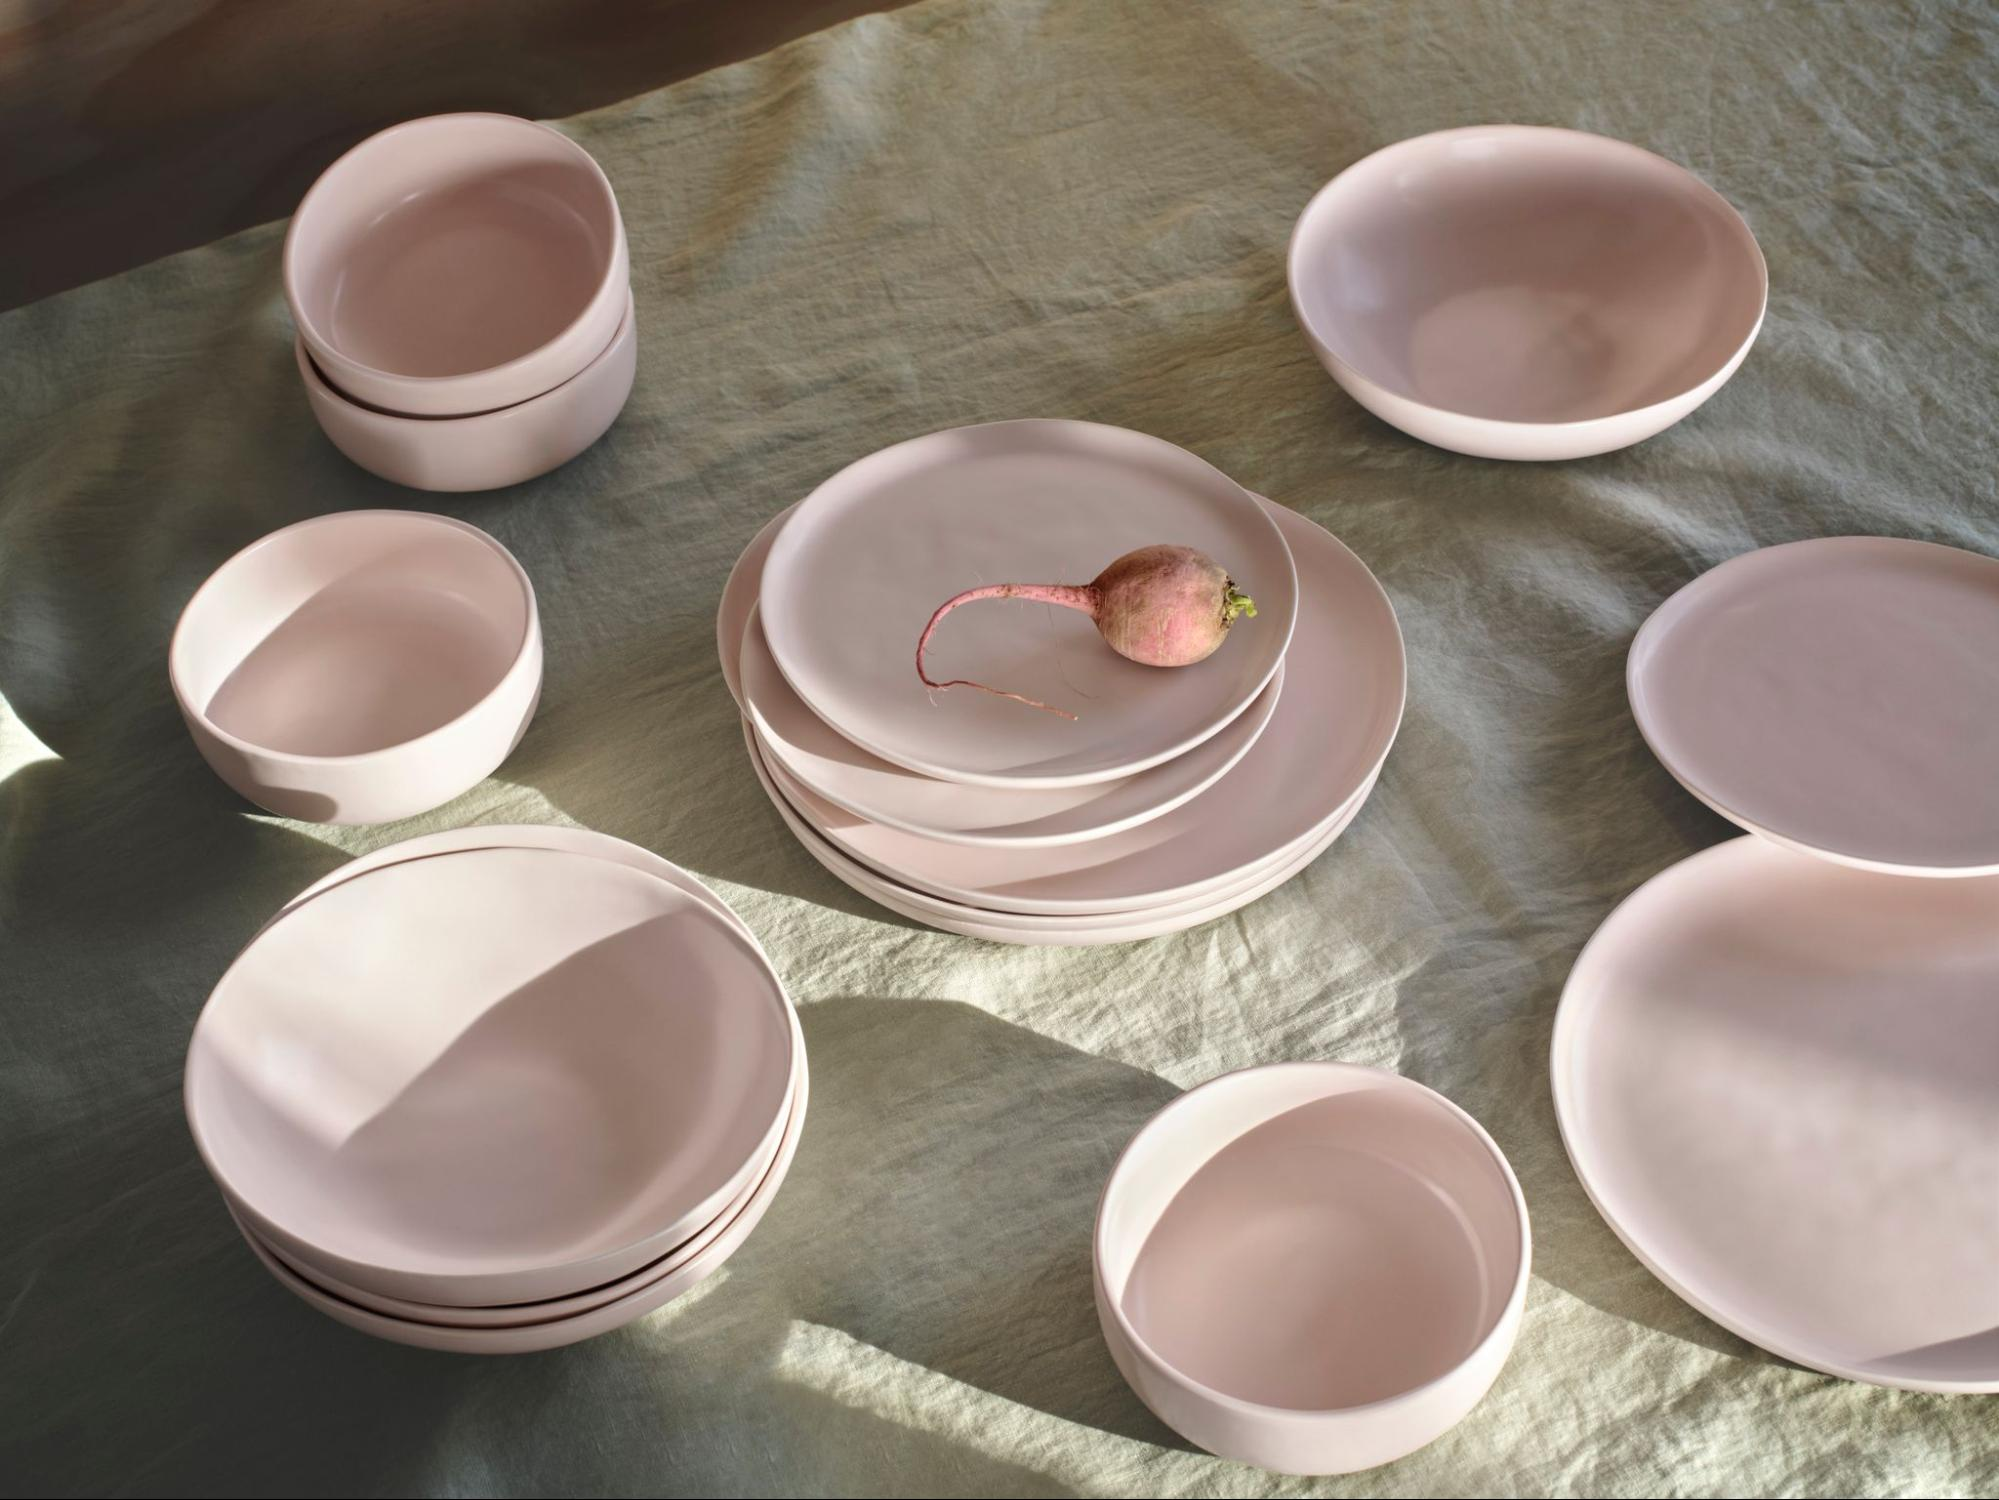 An array of blush pink dinnerware by Fable backdropped a linen tablecloth.